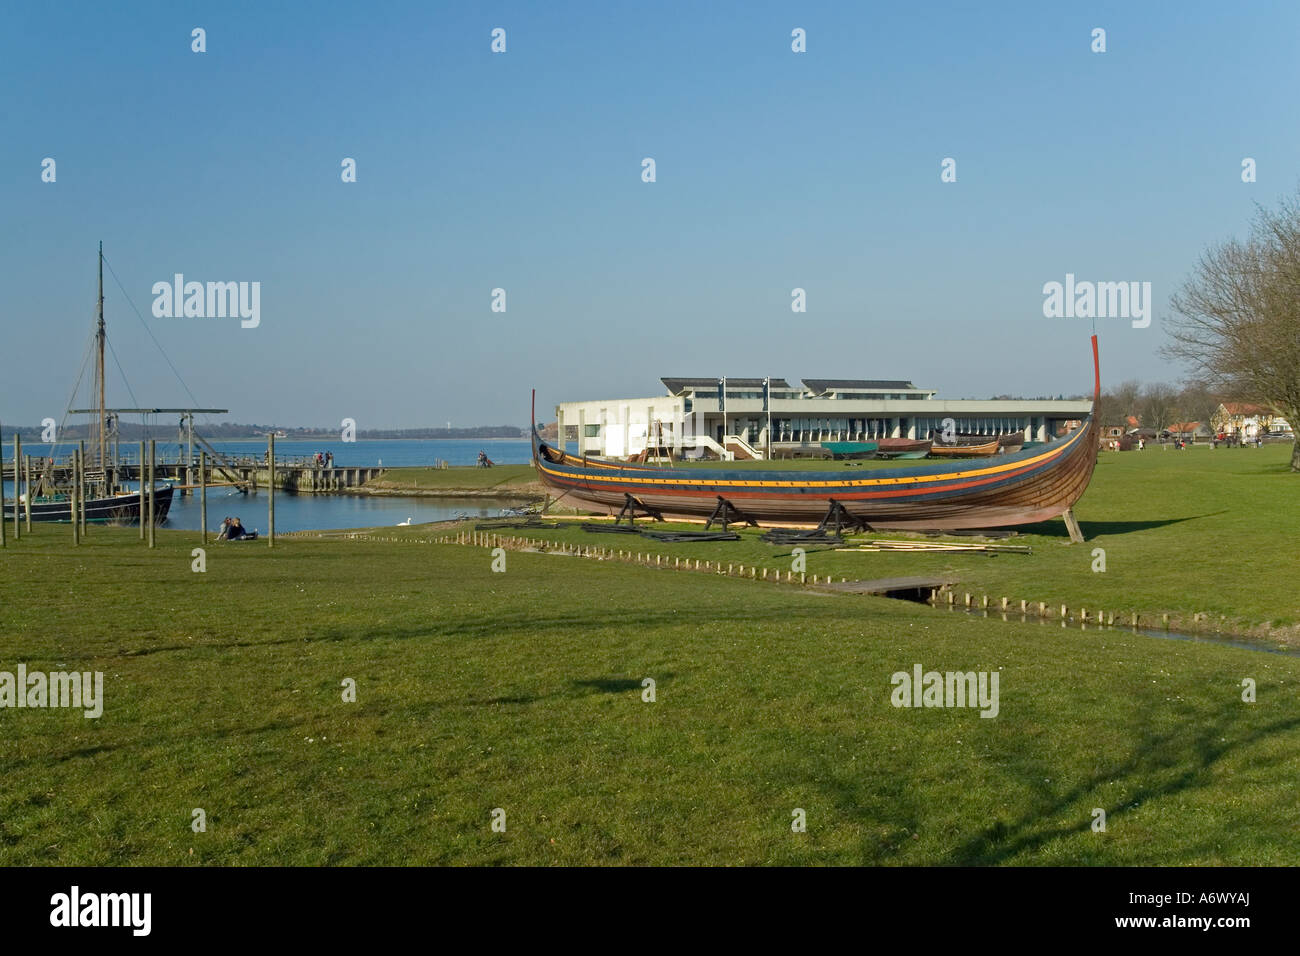 The longship, The Sea Stallion (Søhesten) at the Viking Ship Museum Vikingeskipsmuseet Roskilde Denmark - Stock Image